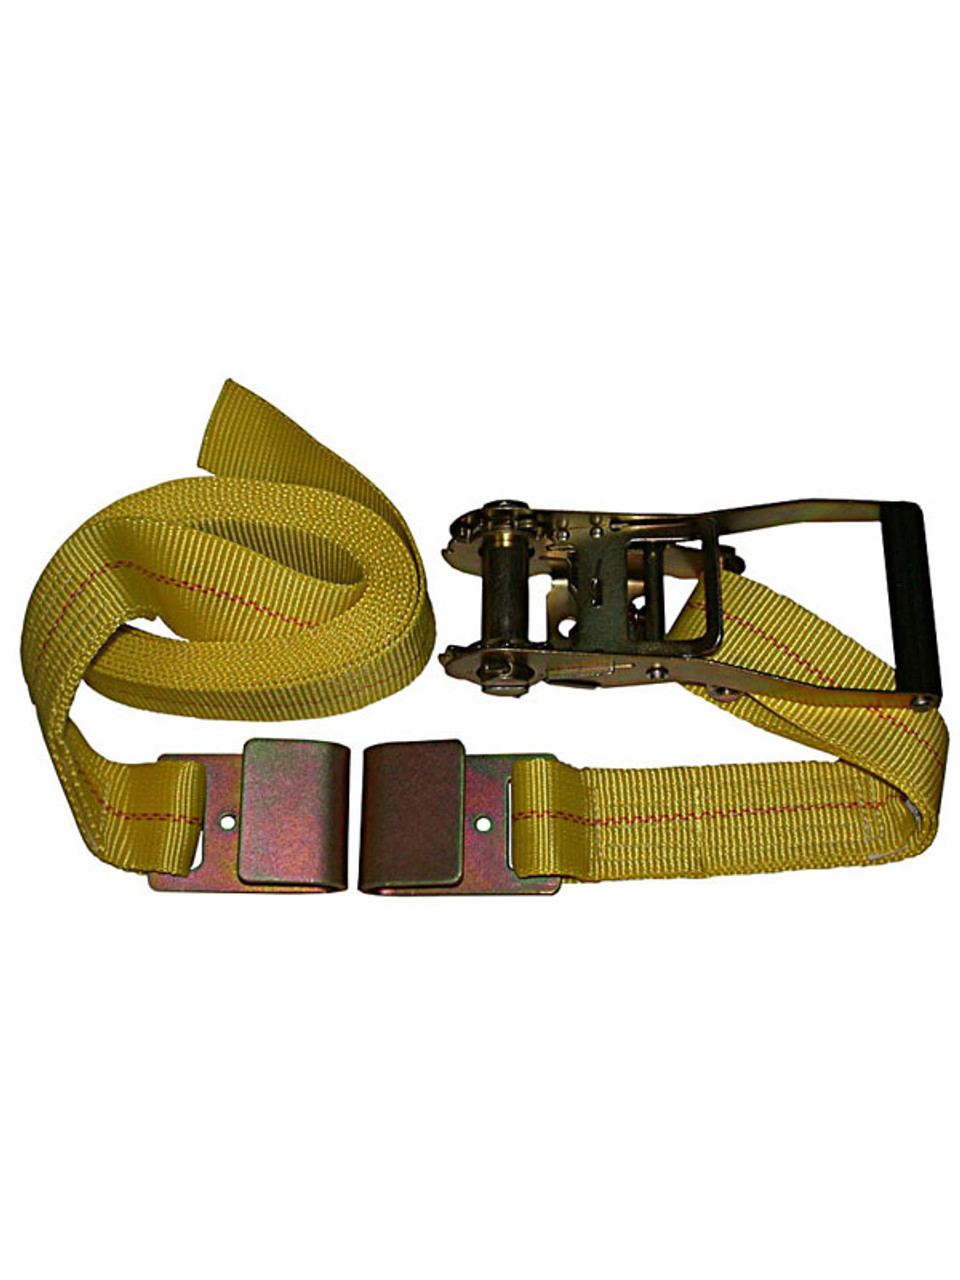 "HD-30FT --- Heavy Duty Tie Down Strap with Ratchet - Flat Hook End Fittings - 2"" x  30'"